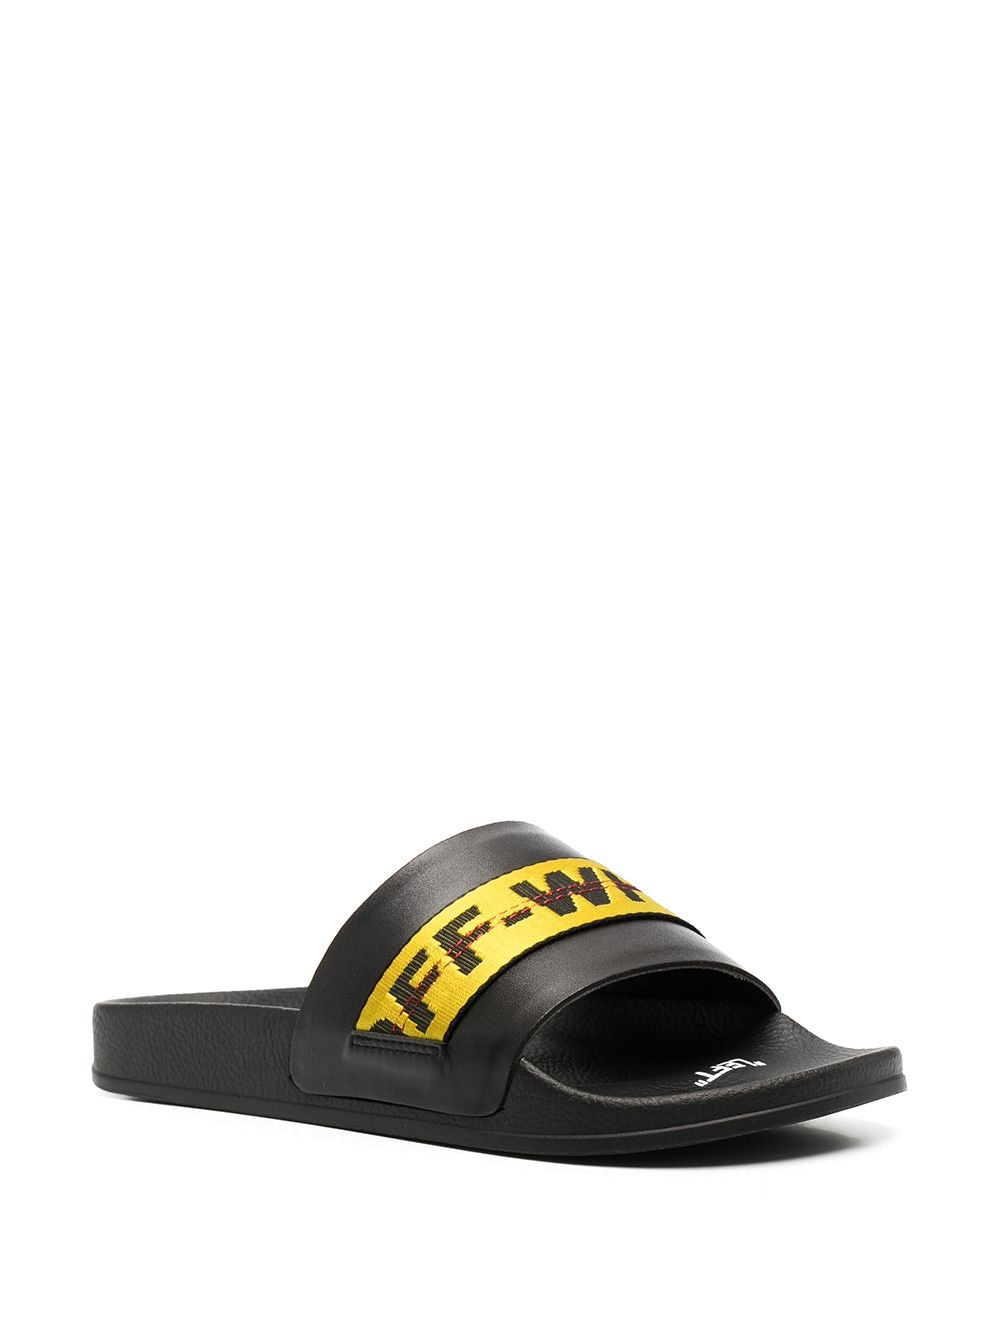 OFF-WHITE Industrial Belt Sliders Black/Yellow